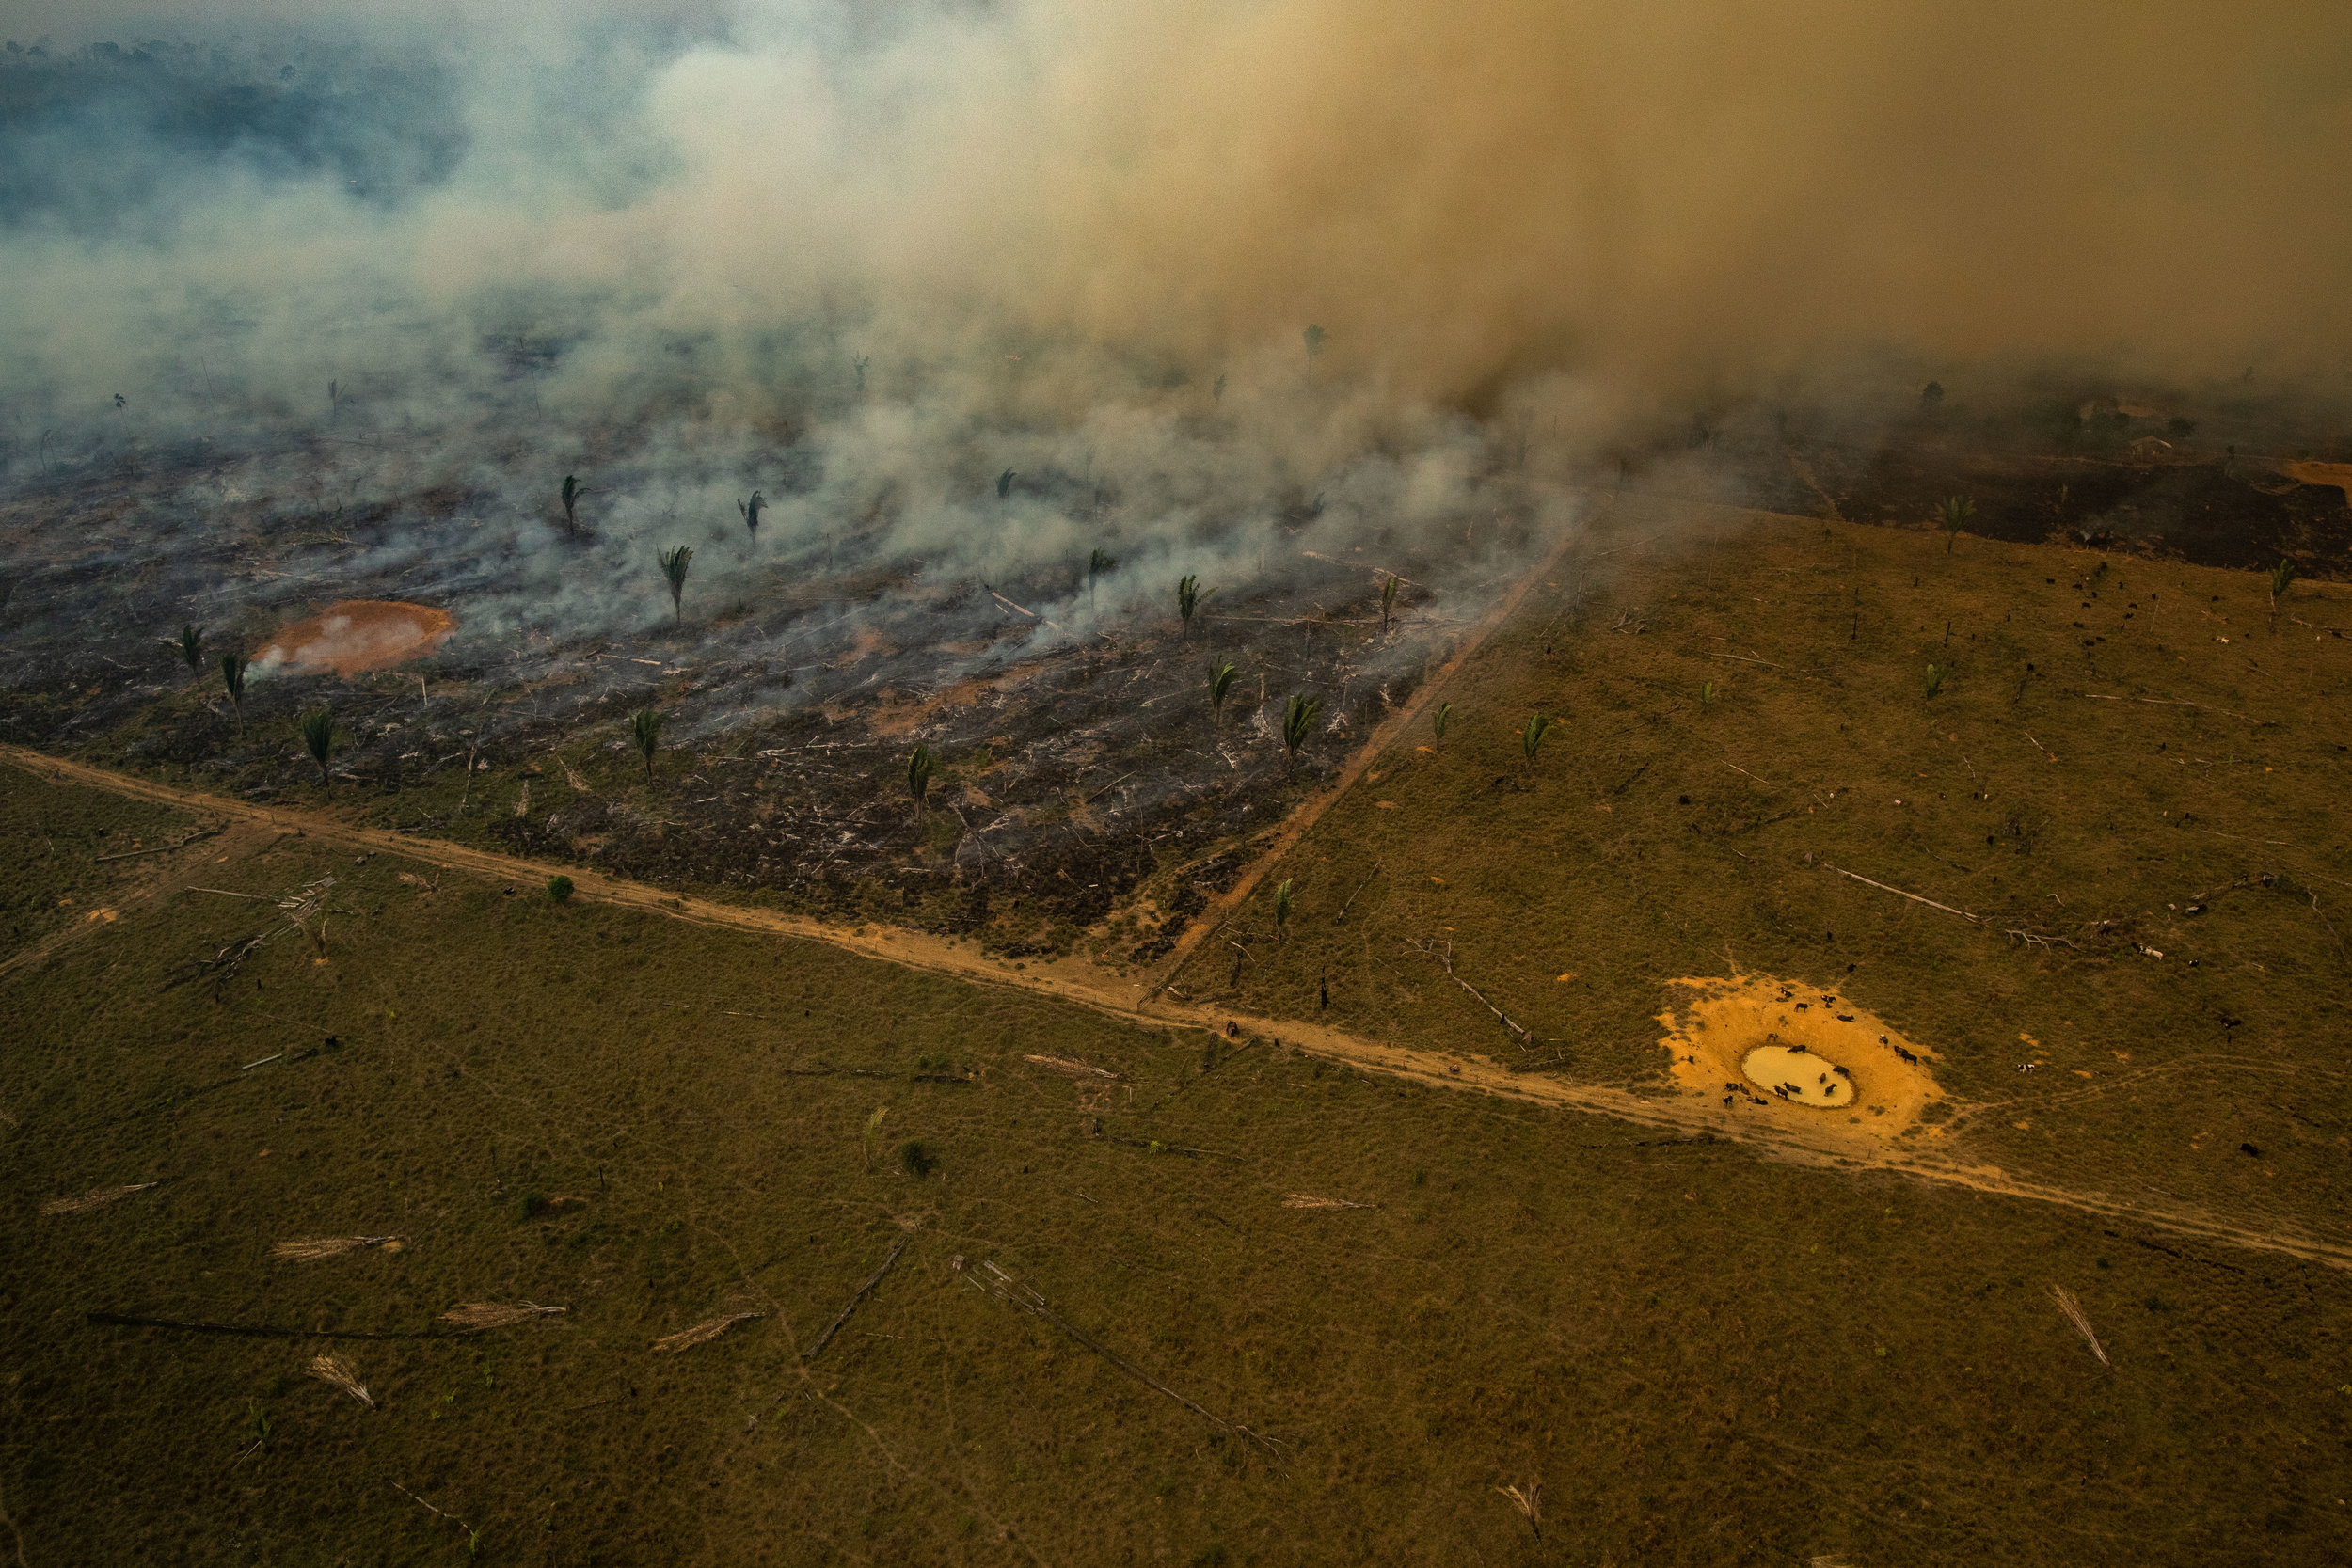 Burning Amazon rainforest surrounded by farmland with grazing animals